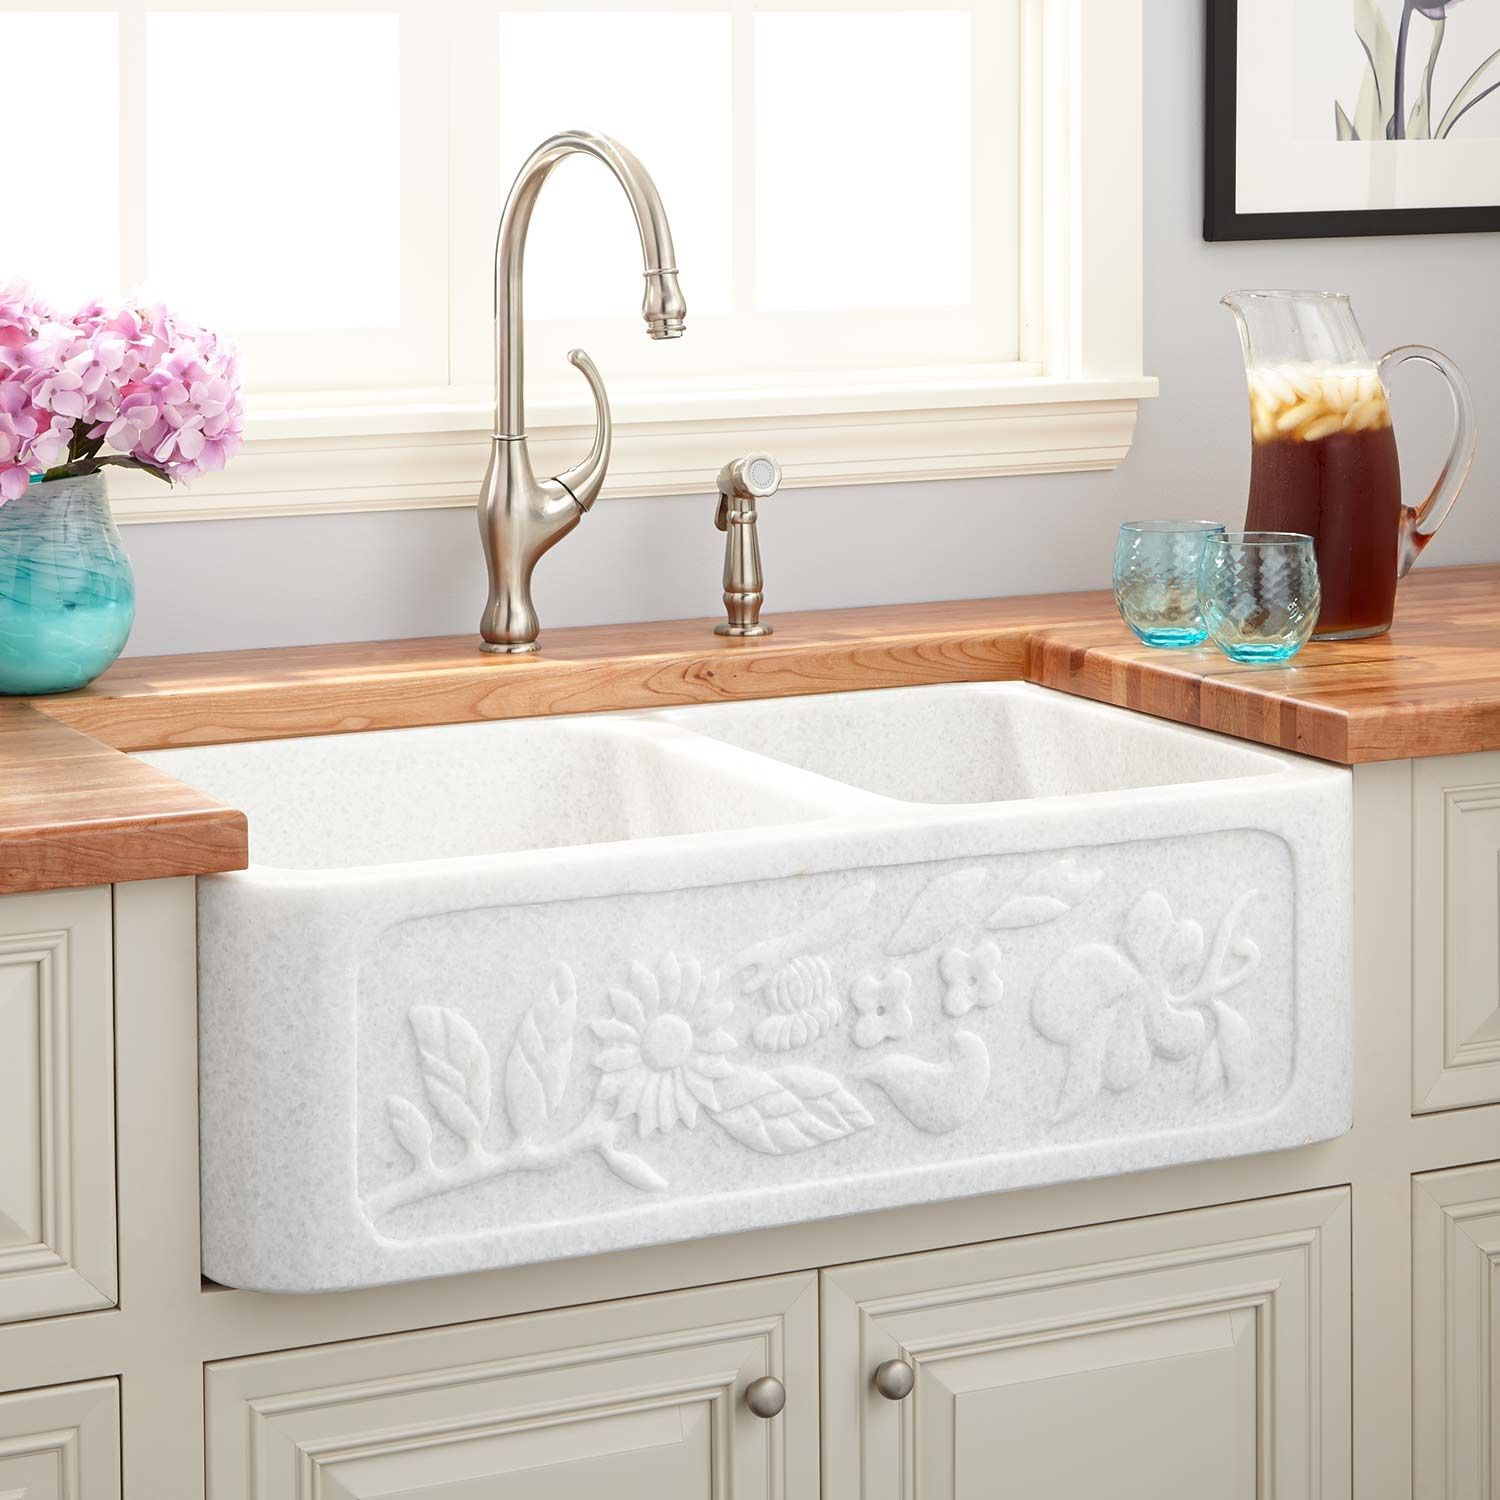 33 Ivy 70 30 Offset Double Bowl Polished Marble Farmhouse Sink White Thassos Fireclay Farmhouse Sink Farmhouse Sink Log Home Kitchens